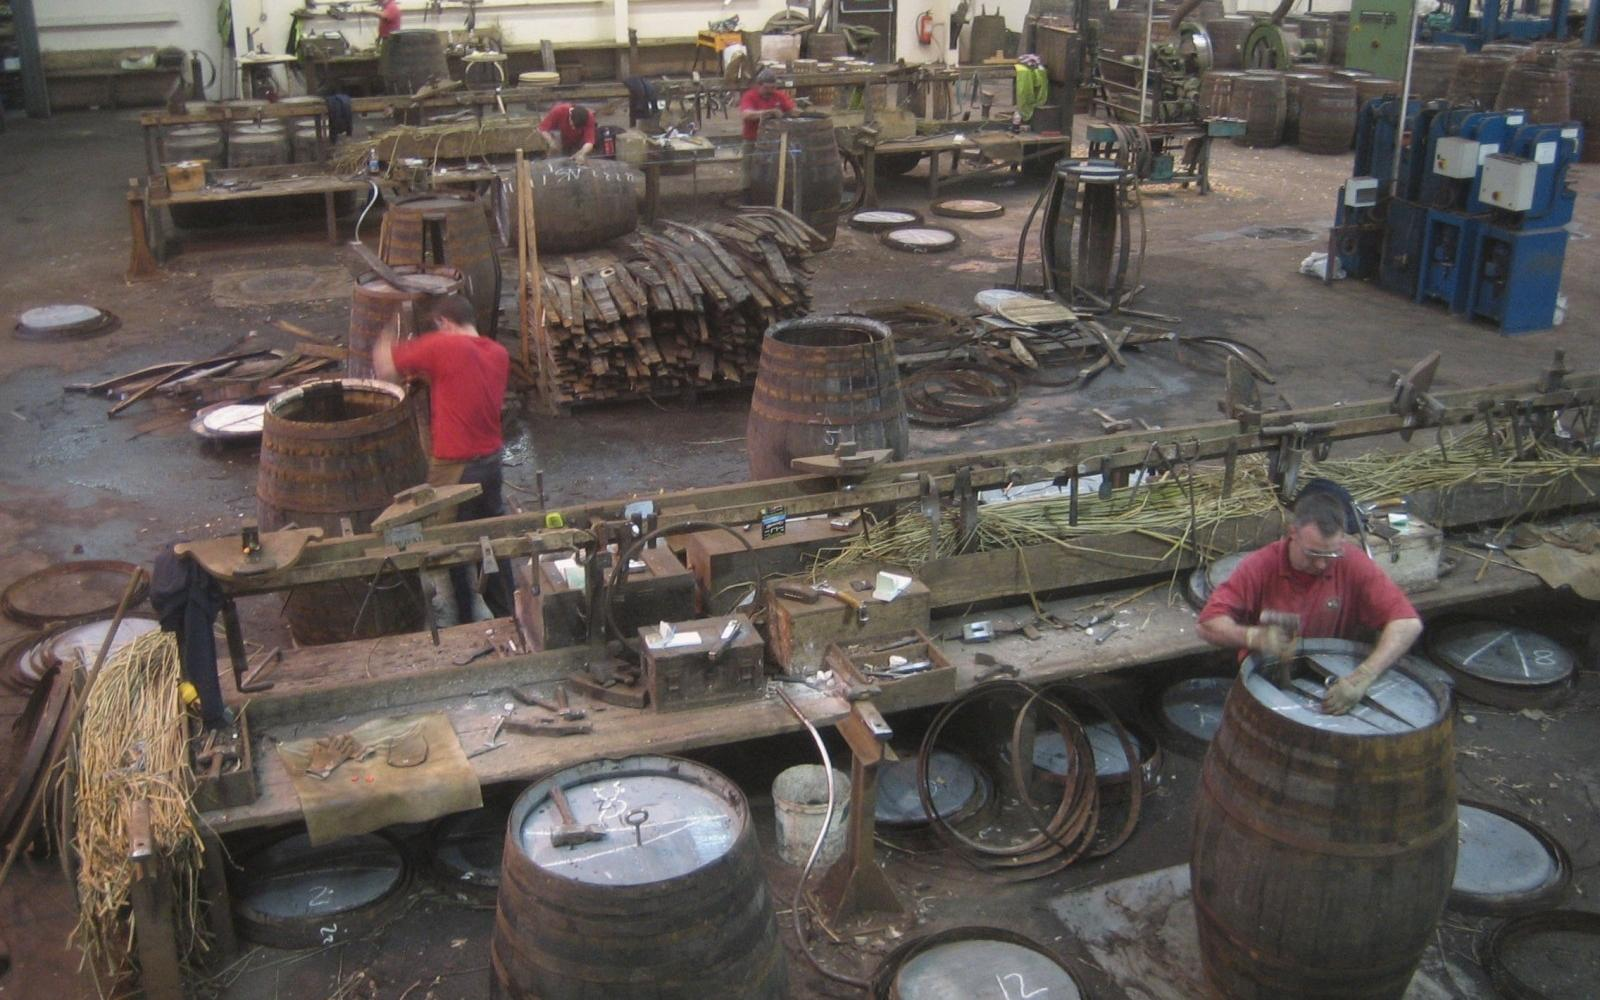 Speyside Cooperage - Photo: Wikimedia Commons / Anton lecram